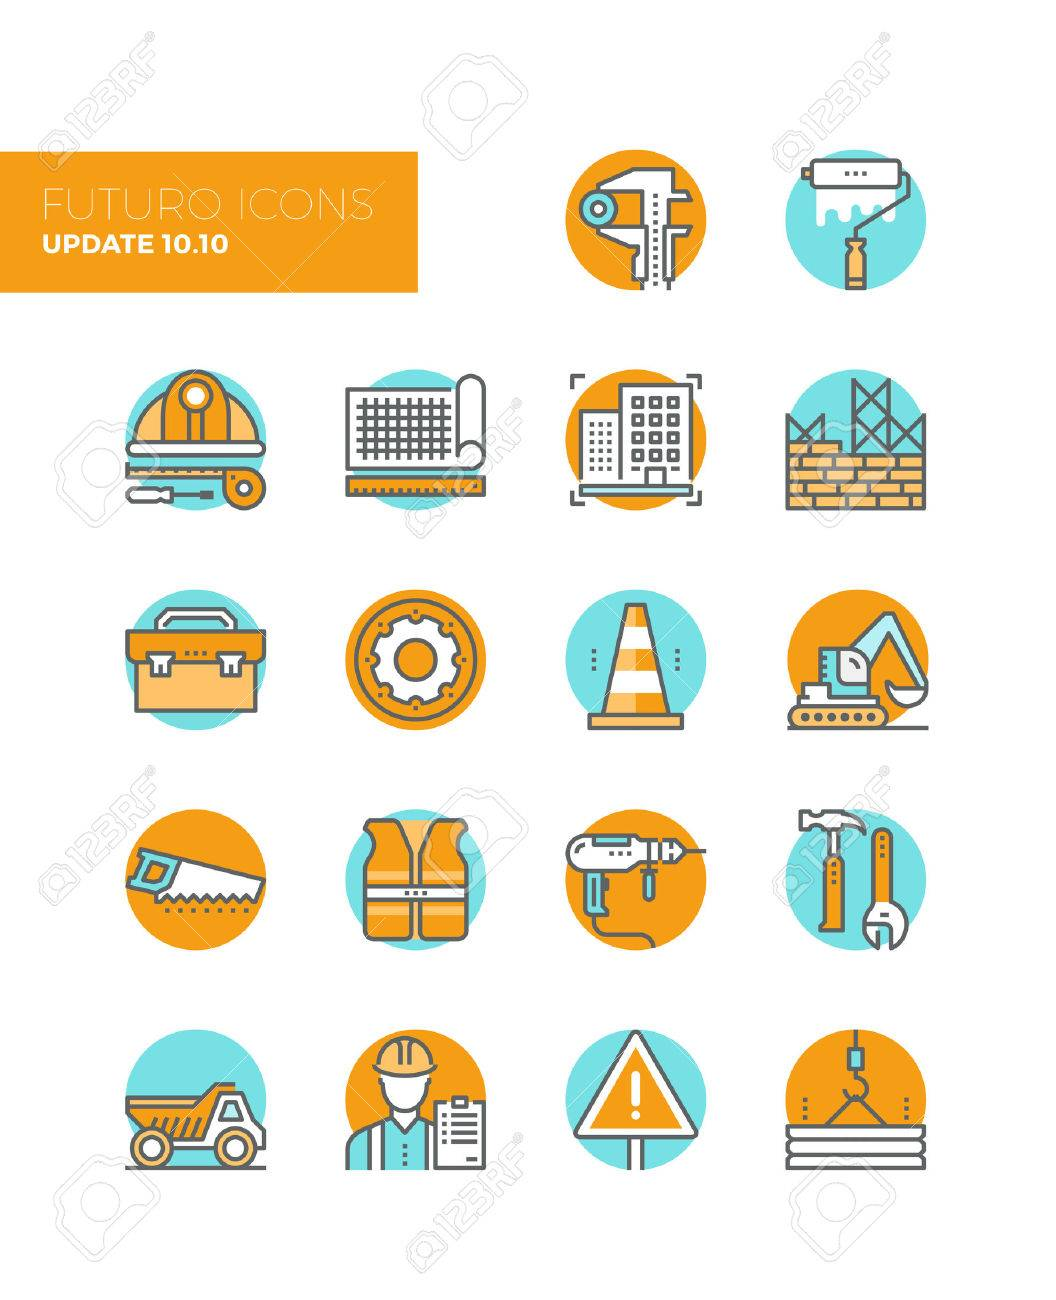 Line icons with flat design elements of building construction site process, engineering drawing production, worker toolbox with equipment. Modern infographic vector icon pictogram collection concept. Stock Vector - 43582221